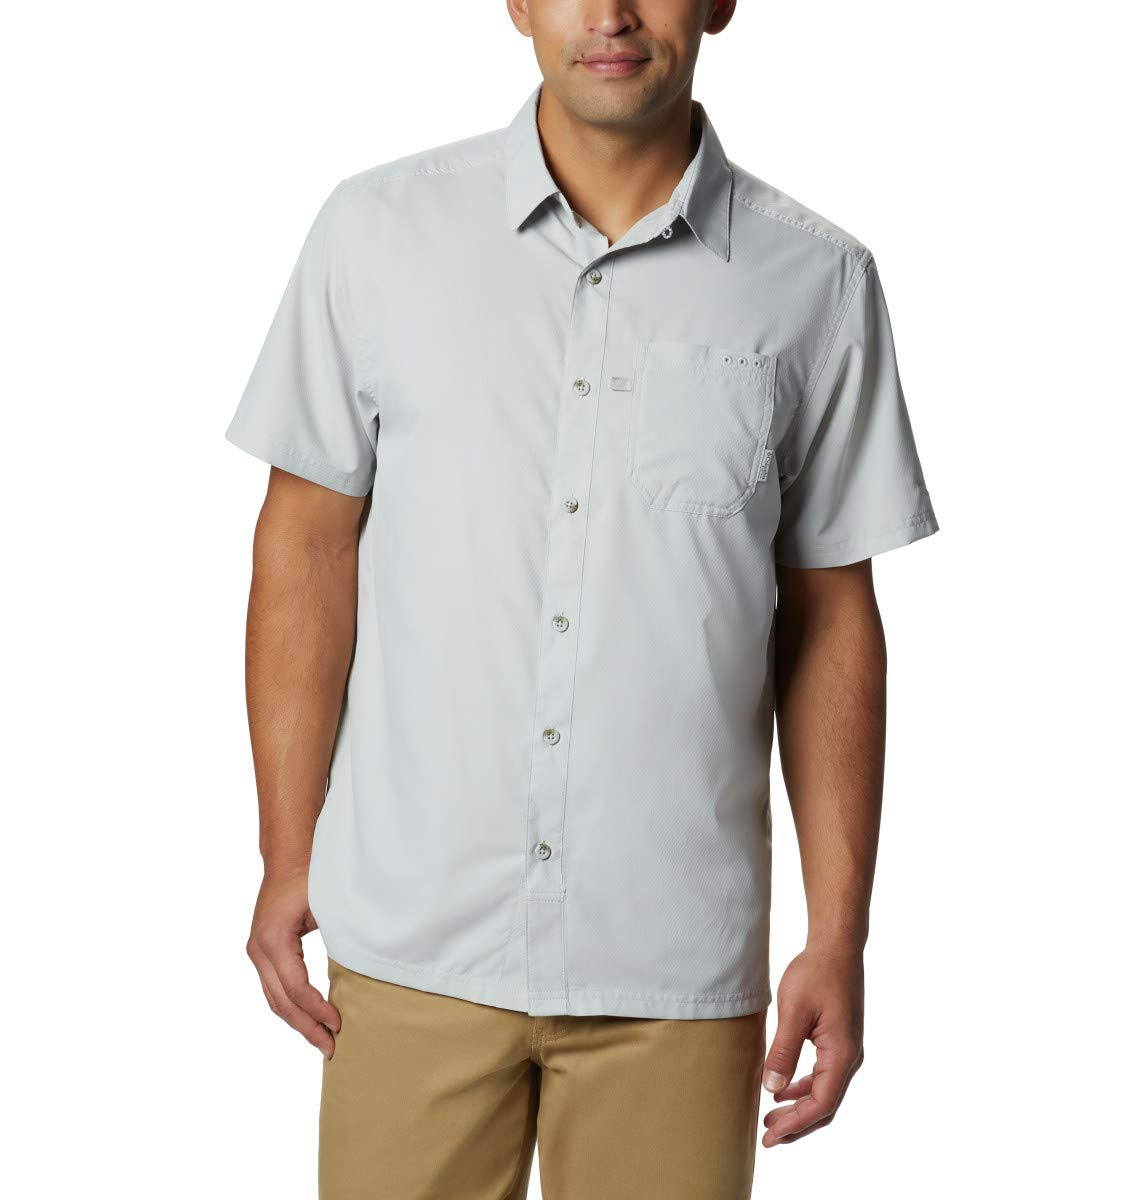 Columbia Standard Men's Slack Tide Camp Shirt, Moisture Wicking, Cool Grey, Small by Columbia